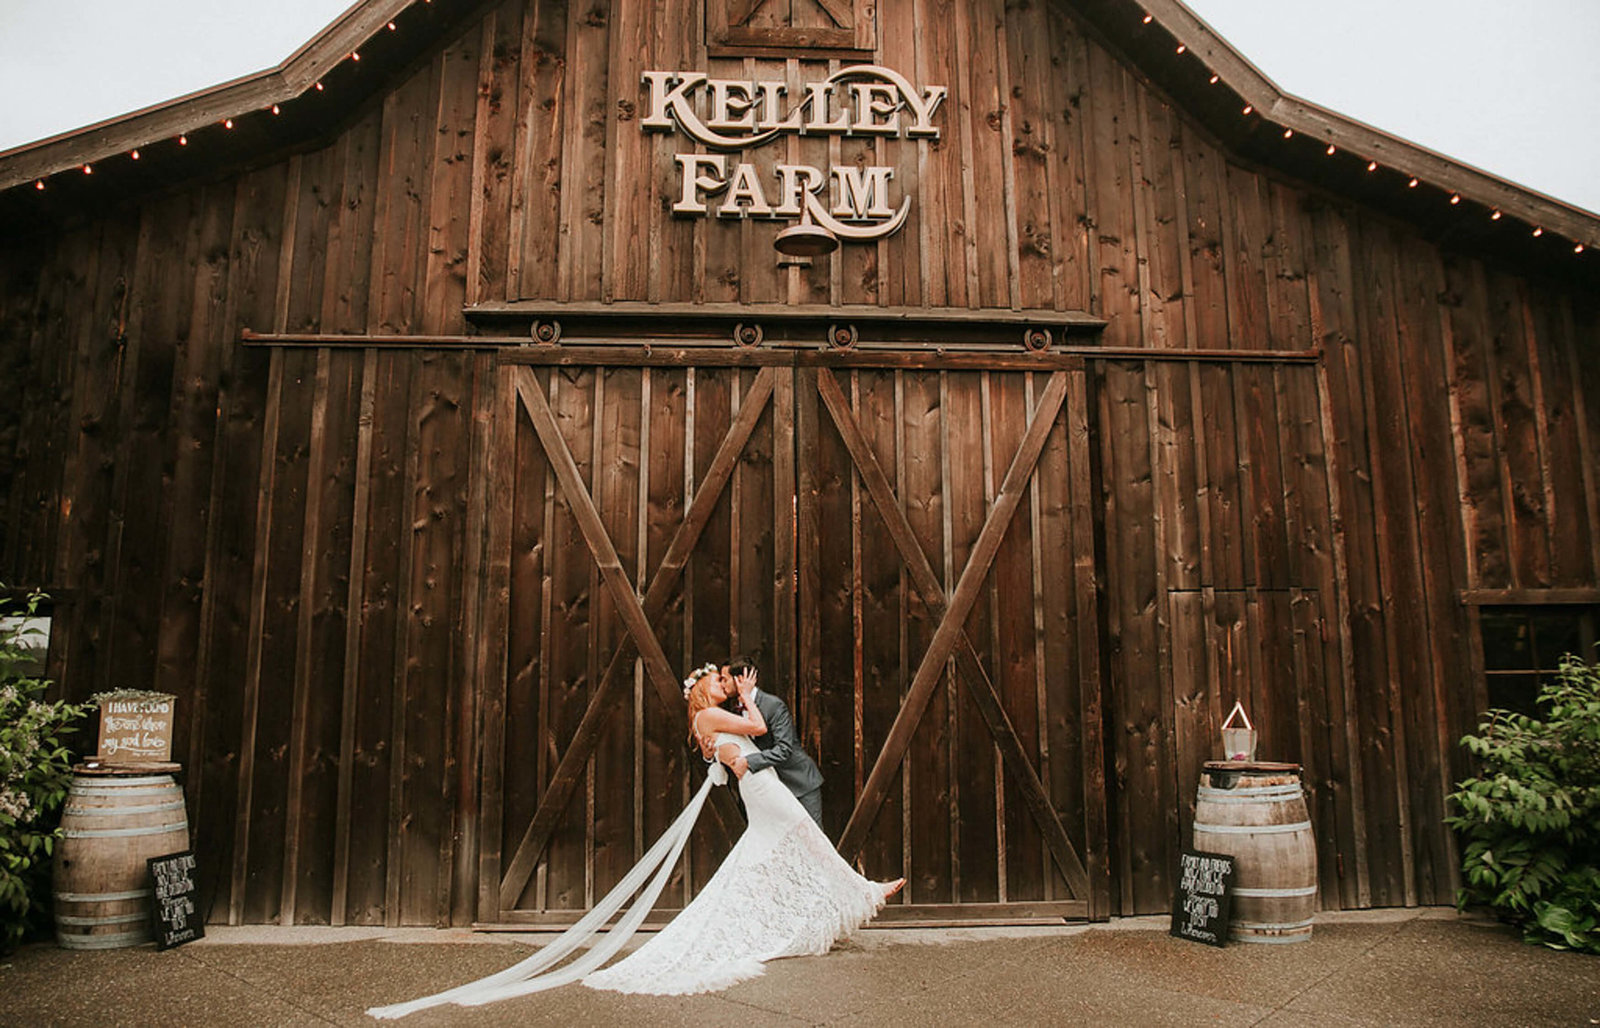 Kelley_Farm_Wedding_photos_seattle_Nicole+Ryan_by_Adina_Preston_Weddings_597